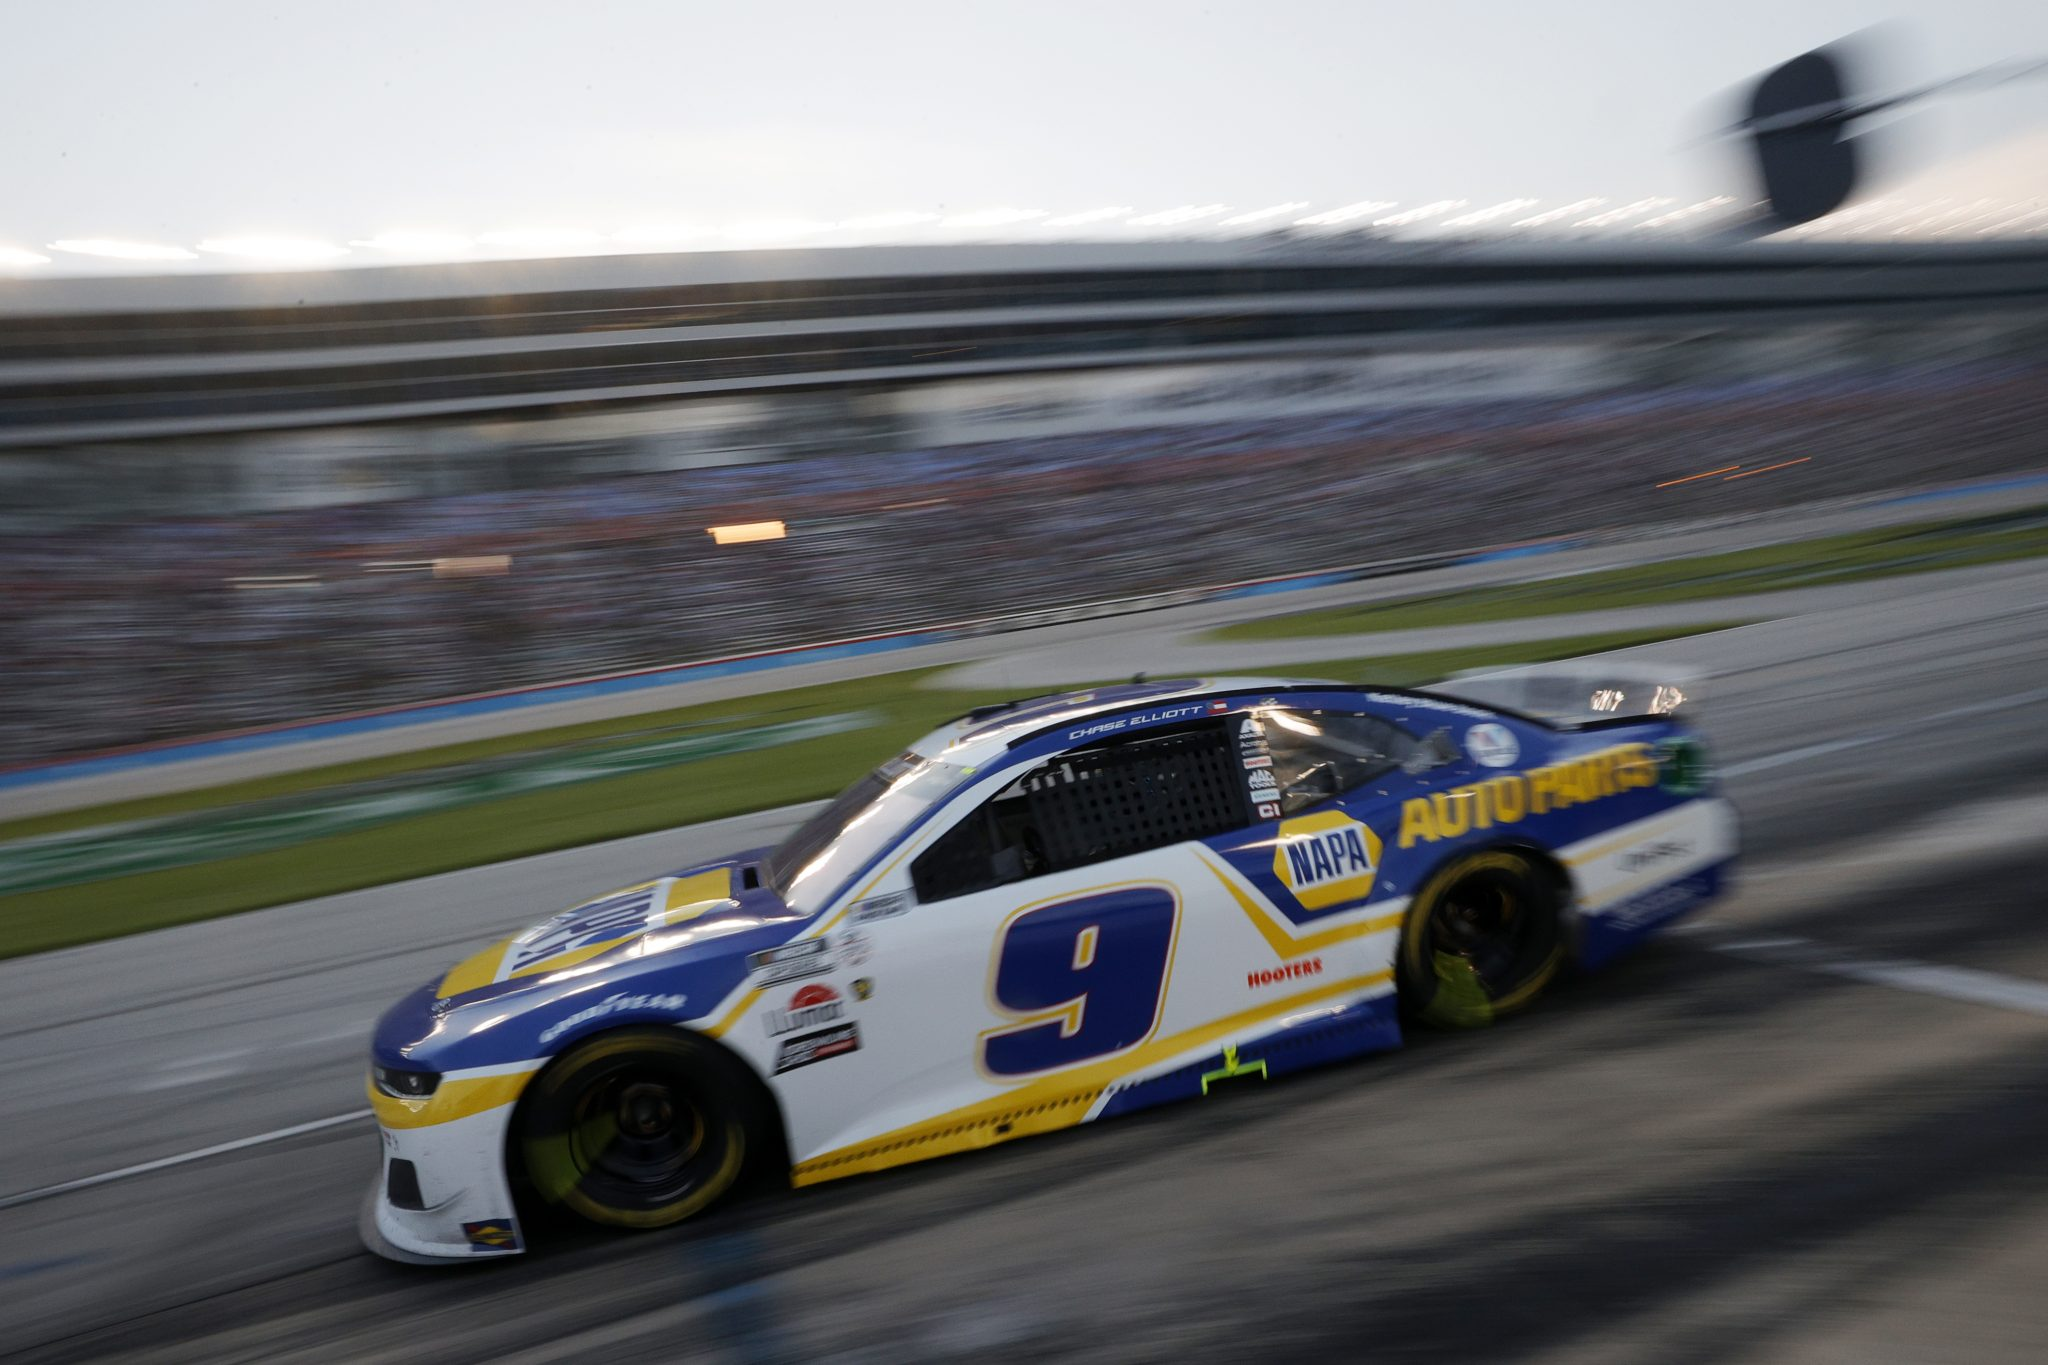 FORT WORTH, TEXAS - JUNE 13: Chase Elliott, driver of the #9 NAPA Auto Parts Chevrolet, exits pit road during the NASCAR All-Star Race at Texas Motor Speedway on June 13, 2021 in Fort Worth, Texas. (Photo by Chris Graythen/Getty Images)   Getty Images